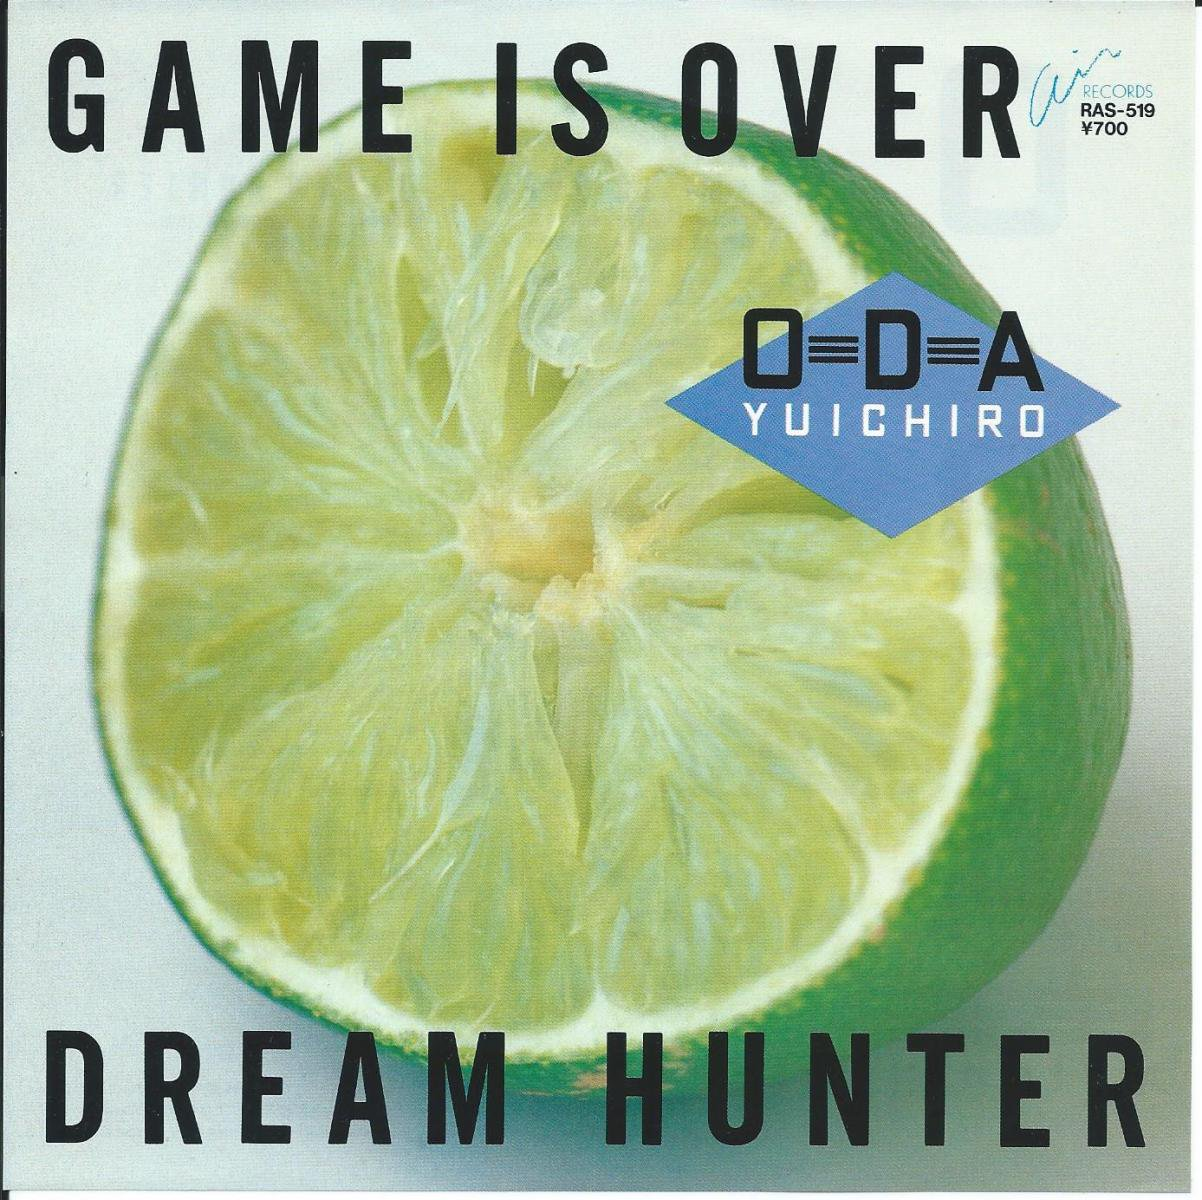 小田裕一郎 YUICHIRO ODA / GAME IS OVER / DREAM HUNTER (7